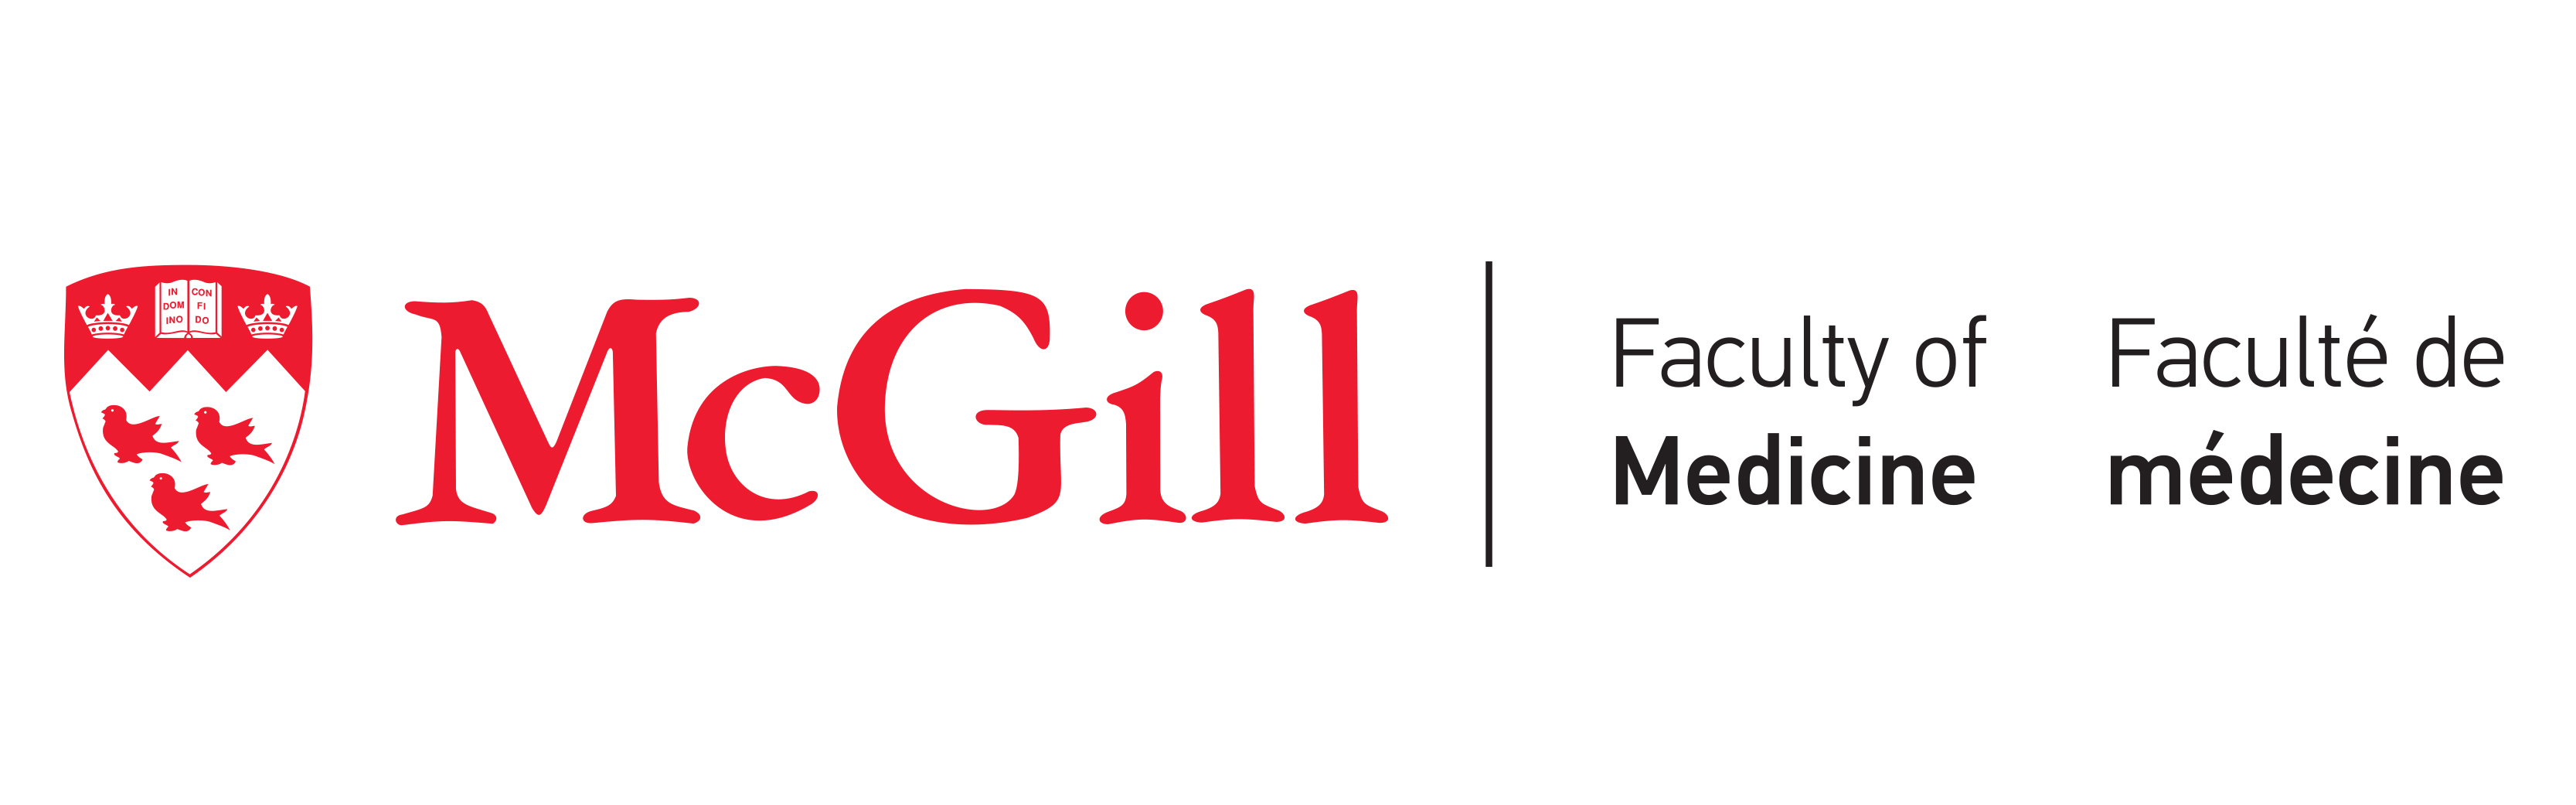 mcgill_fom_visual-identity.jpg